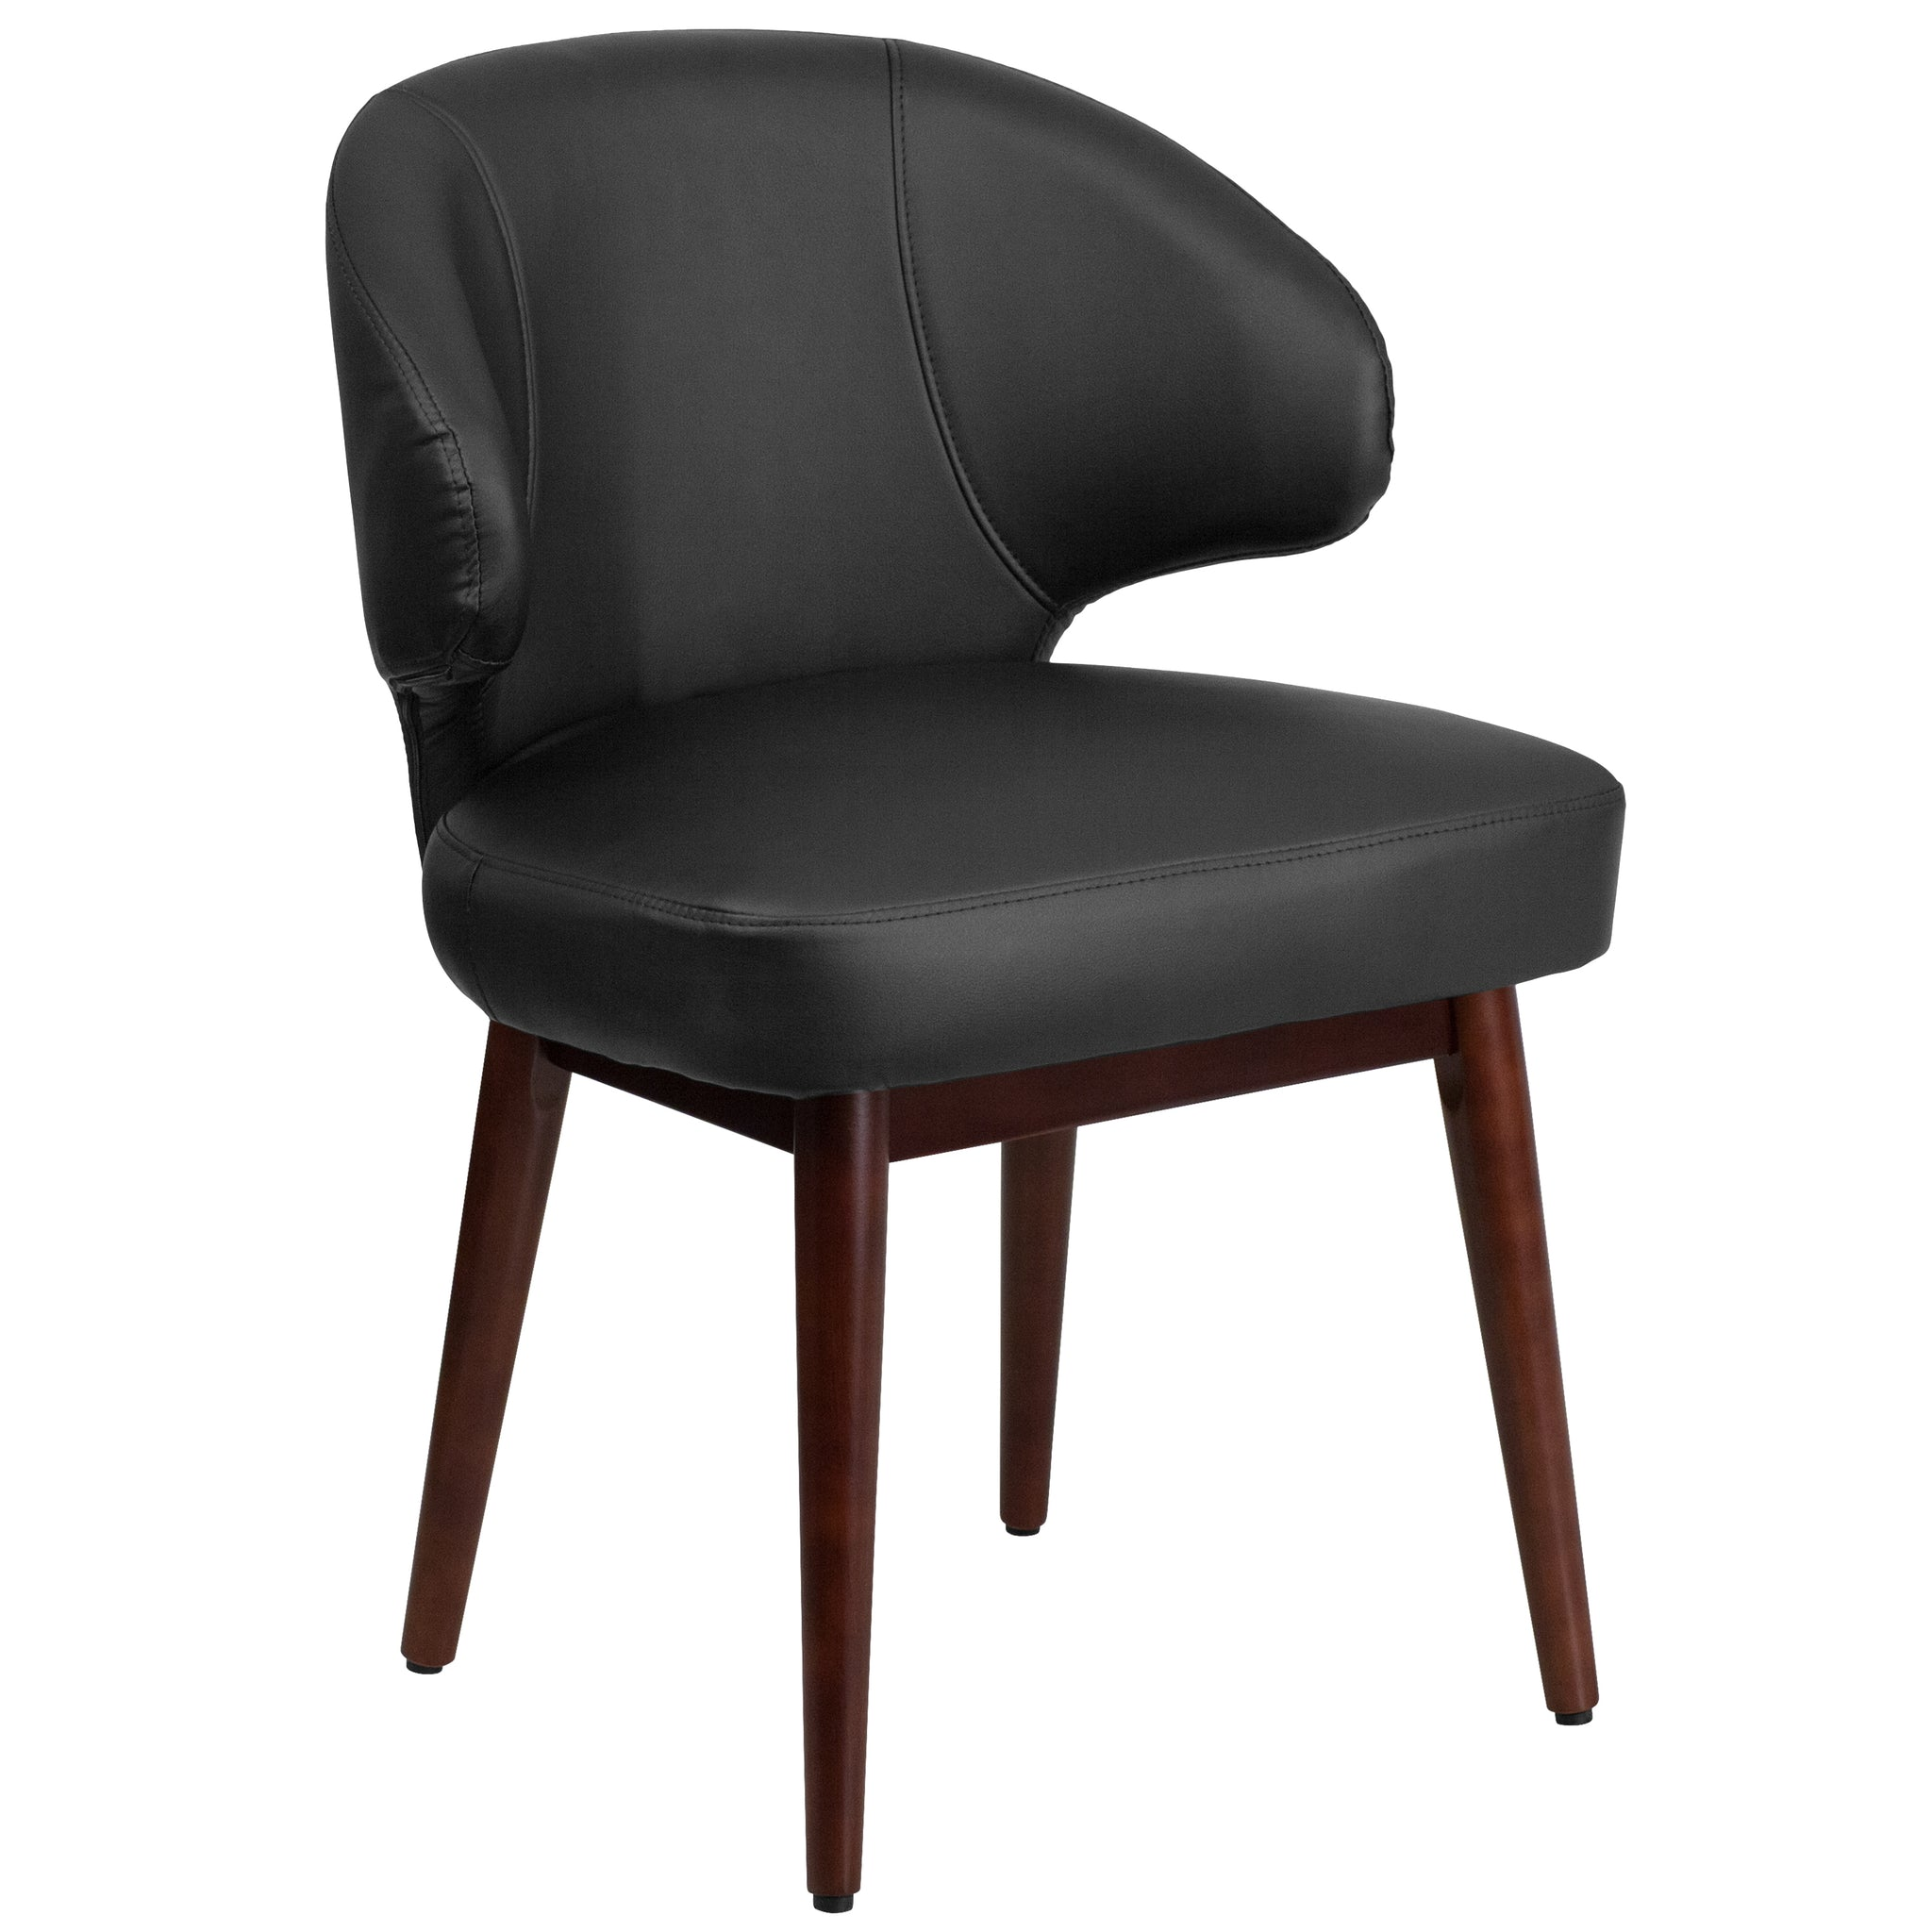 Comfort Back Series Reception-Lounge-Office Chair with Walnut Legs: Burgundy Leather